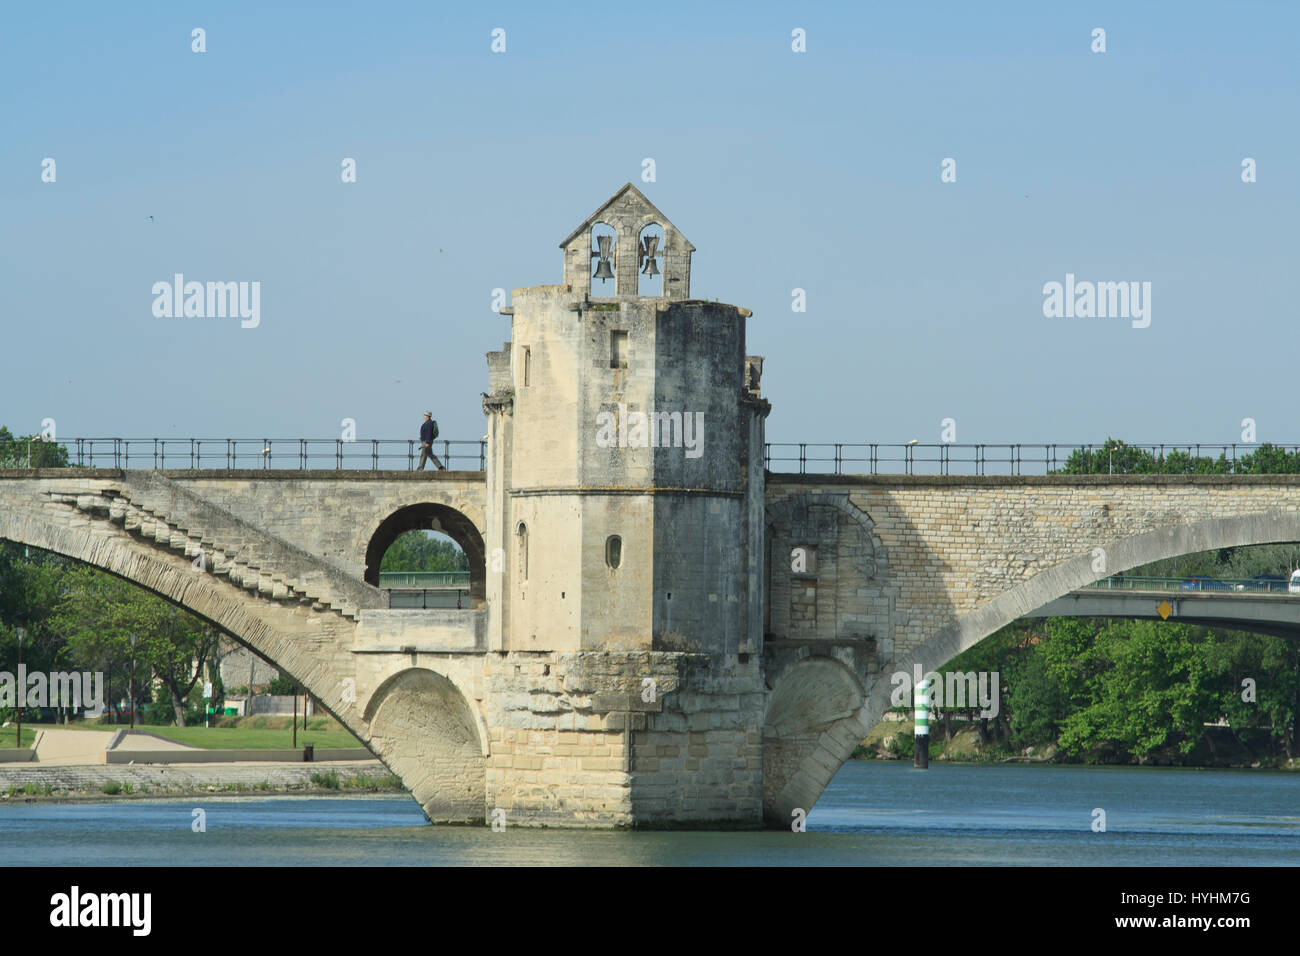 France, Vaucluse, Avignon, bridge St Benezet and the Chapel Saint Nicolas - Stock Image